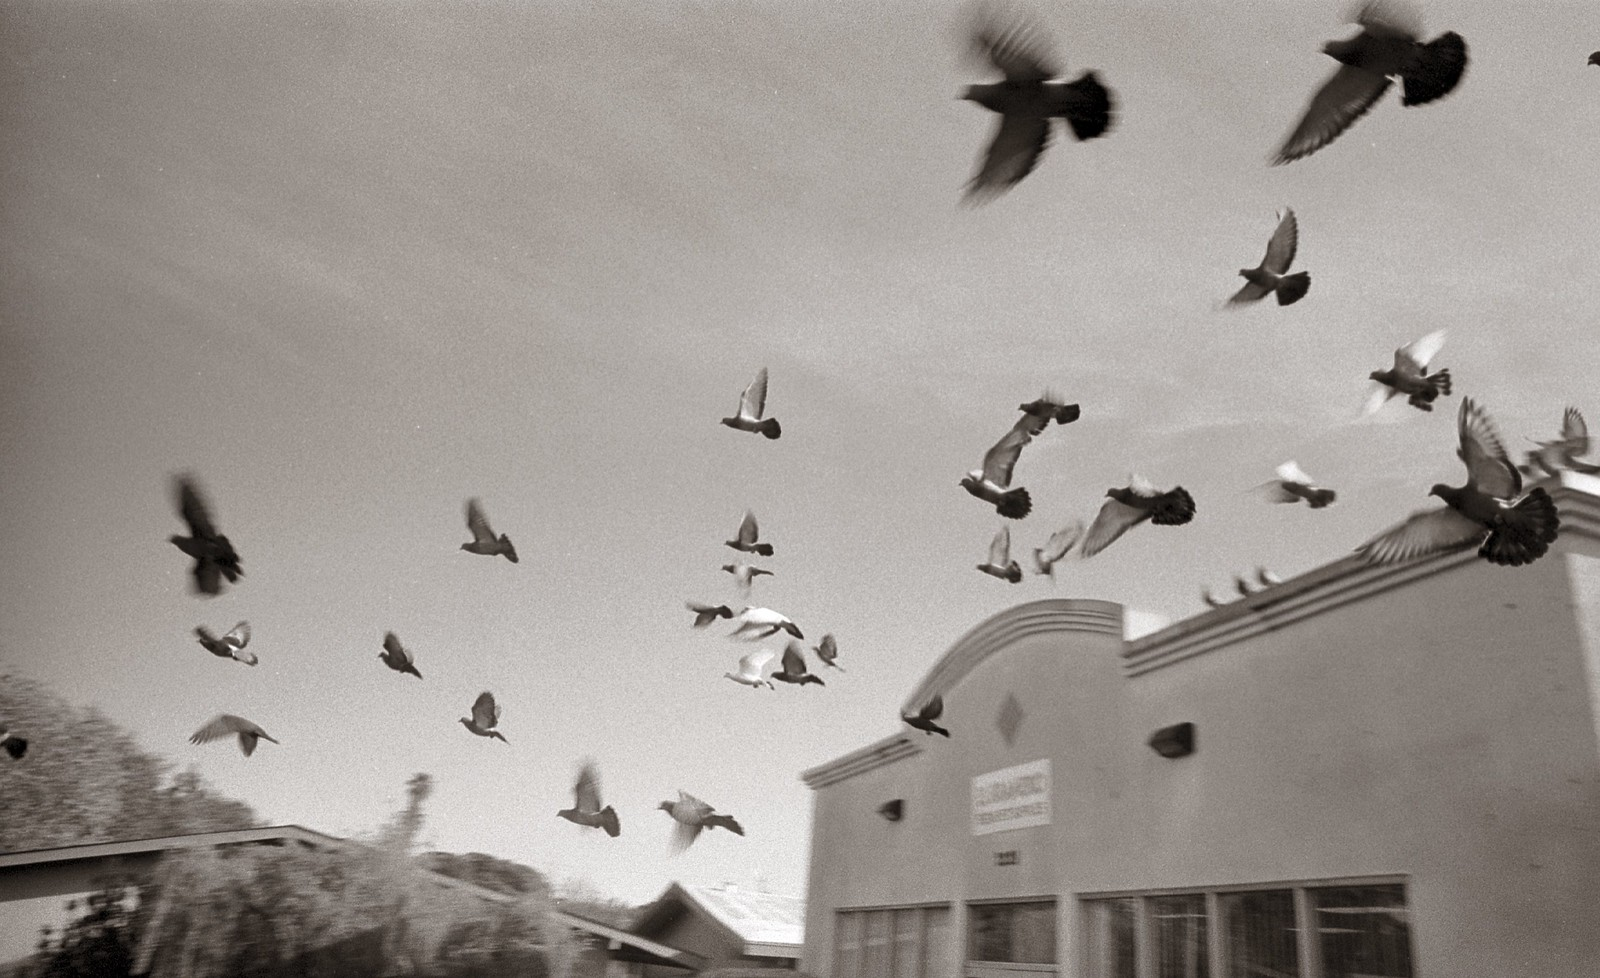 Flock | by efo